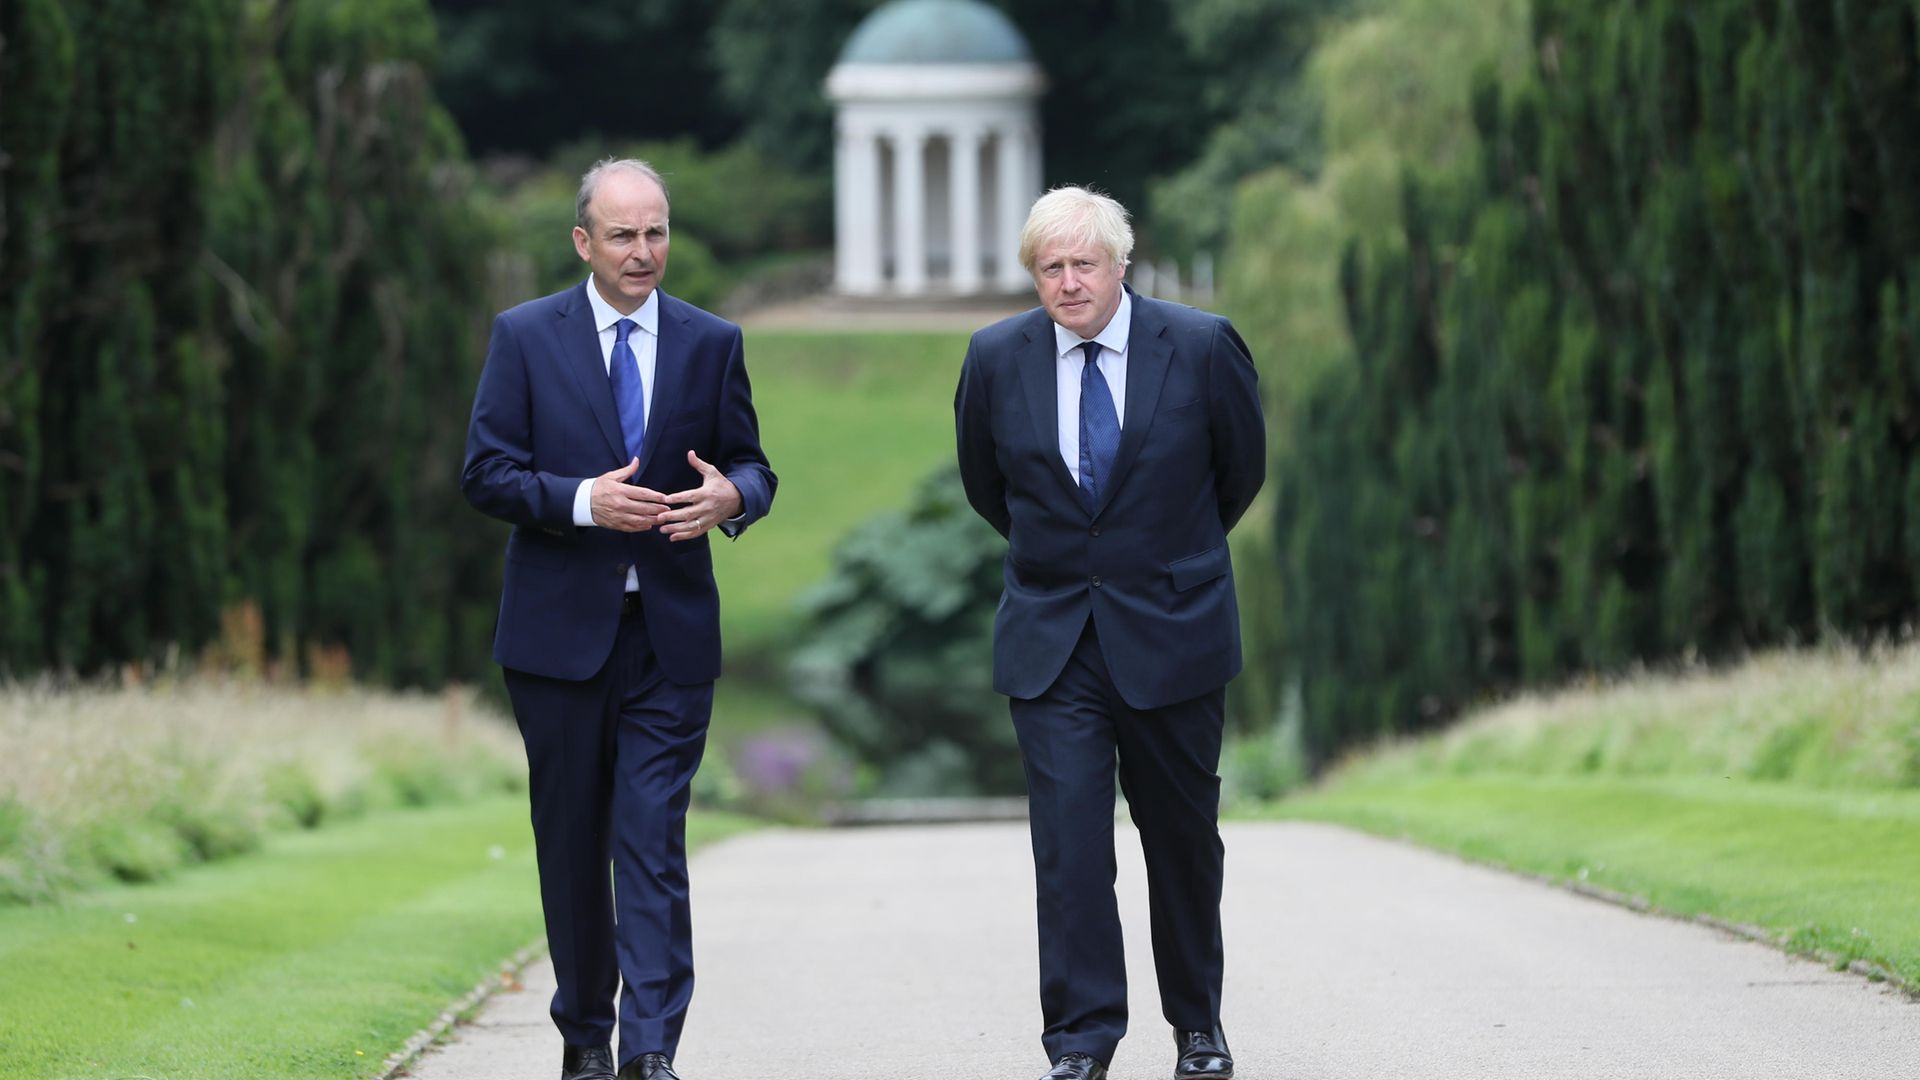 Prime minister Boris Johnson (right) and Irish taoiseach Micheal Martin walking in the gardens of Hillsborough Castle during a visit the prime minister's made to Belfast. - Credit: PA